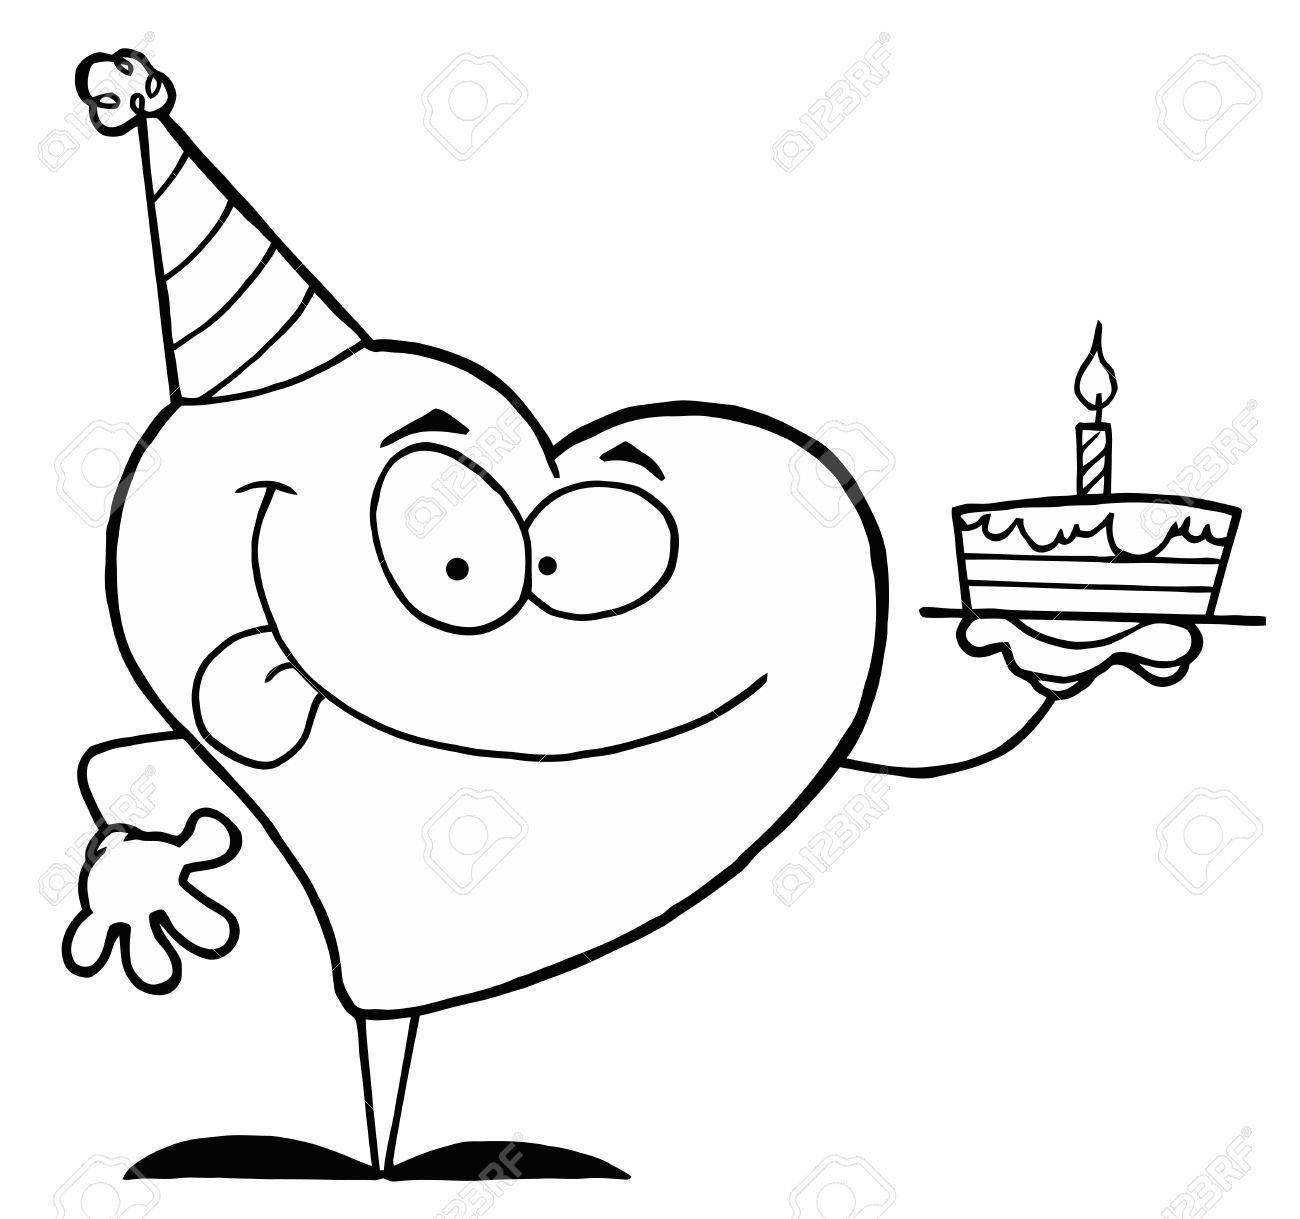 Black And White Coloring Page Outline Of A Heart Holding A Cake Stock Vector - 16386682